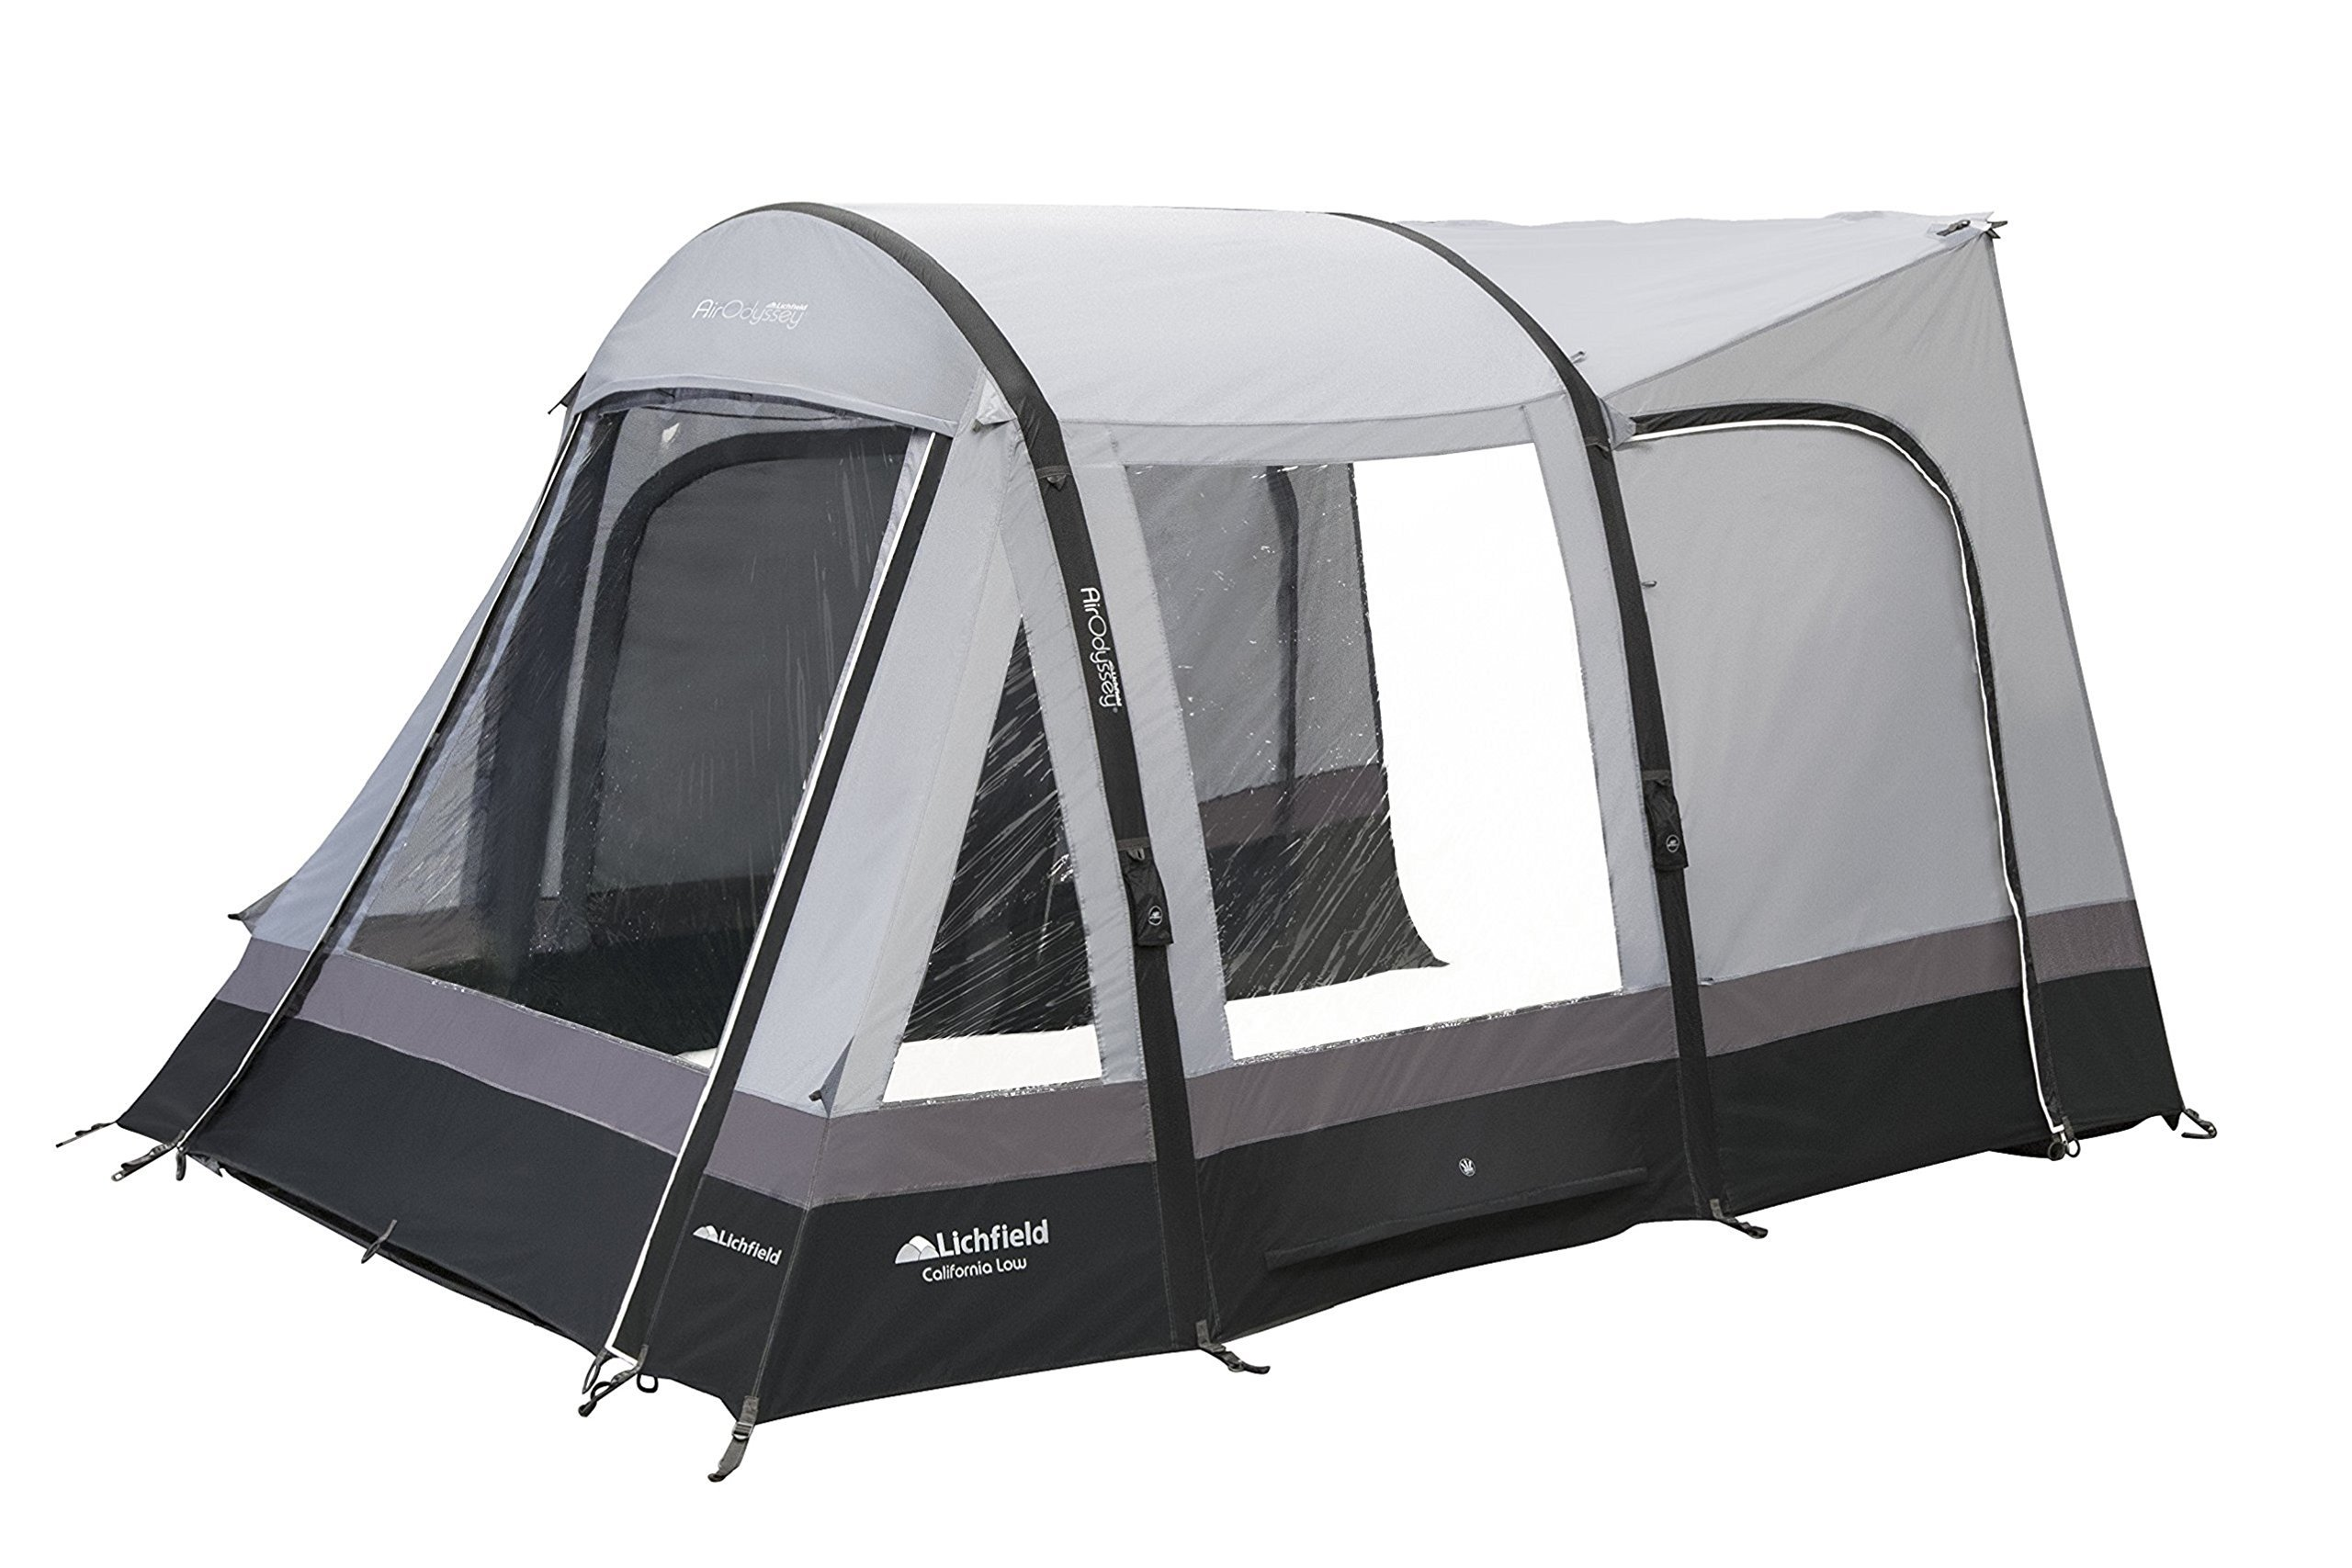 annex red outdoors shop autana awning top haze ruggedized roof bear with front gray series tent